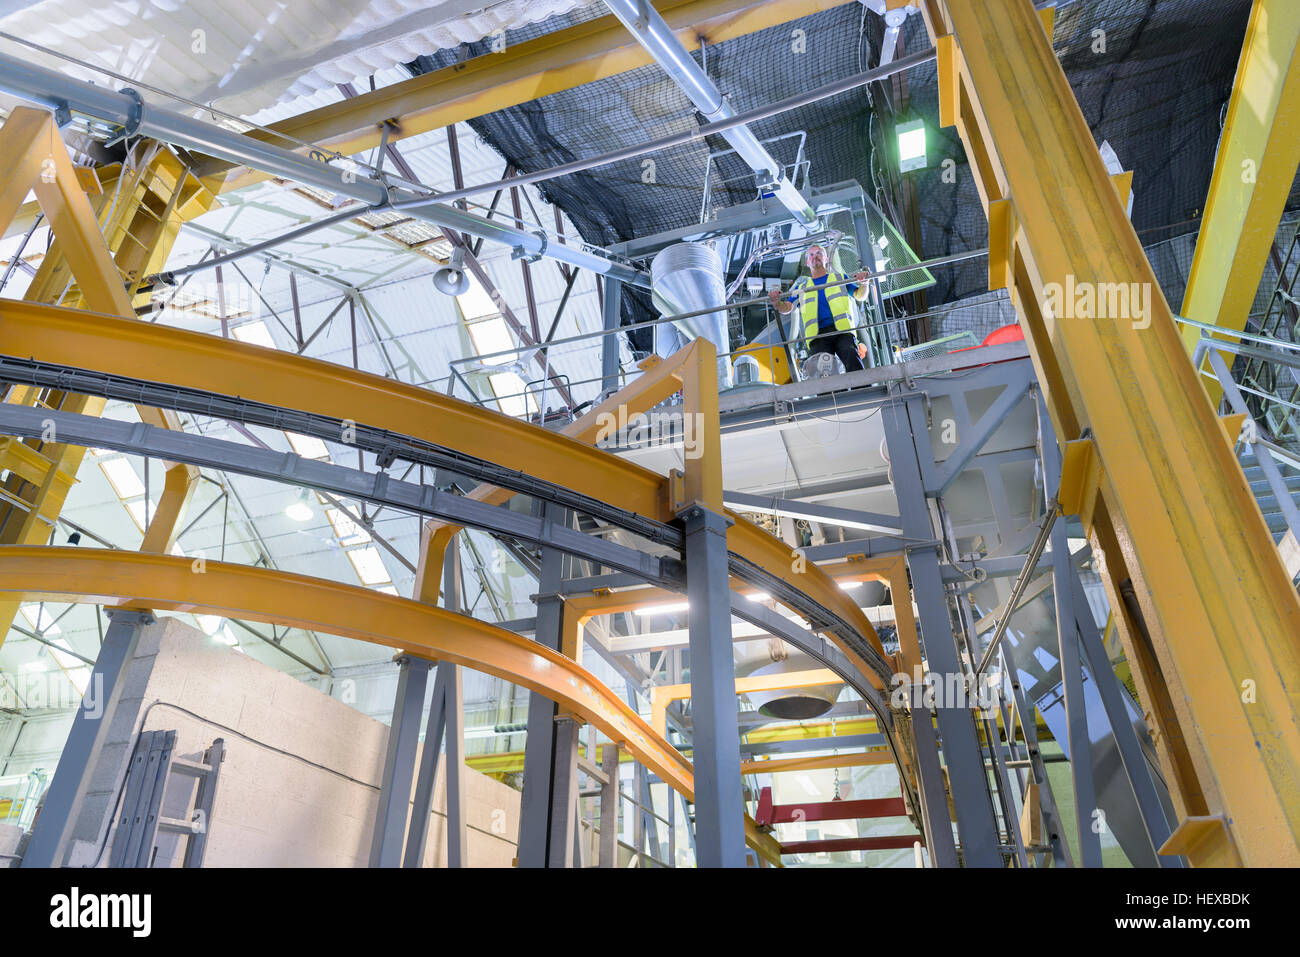 Robotic machinery in architectural stone factory, low angle view - Stock Image